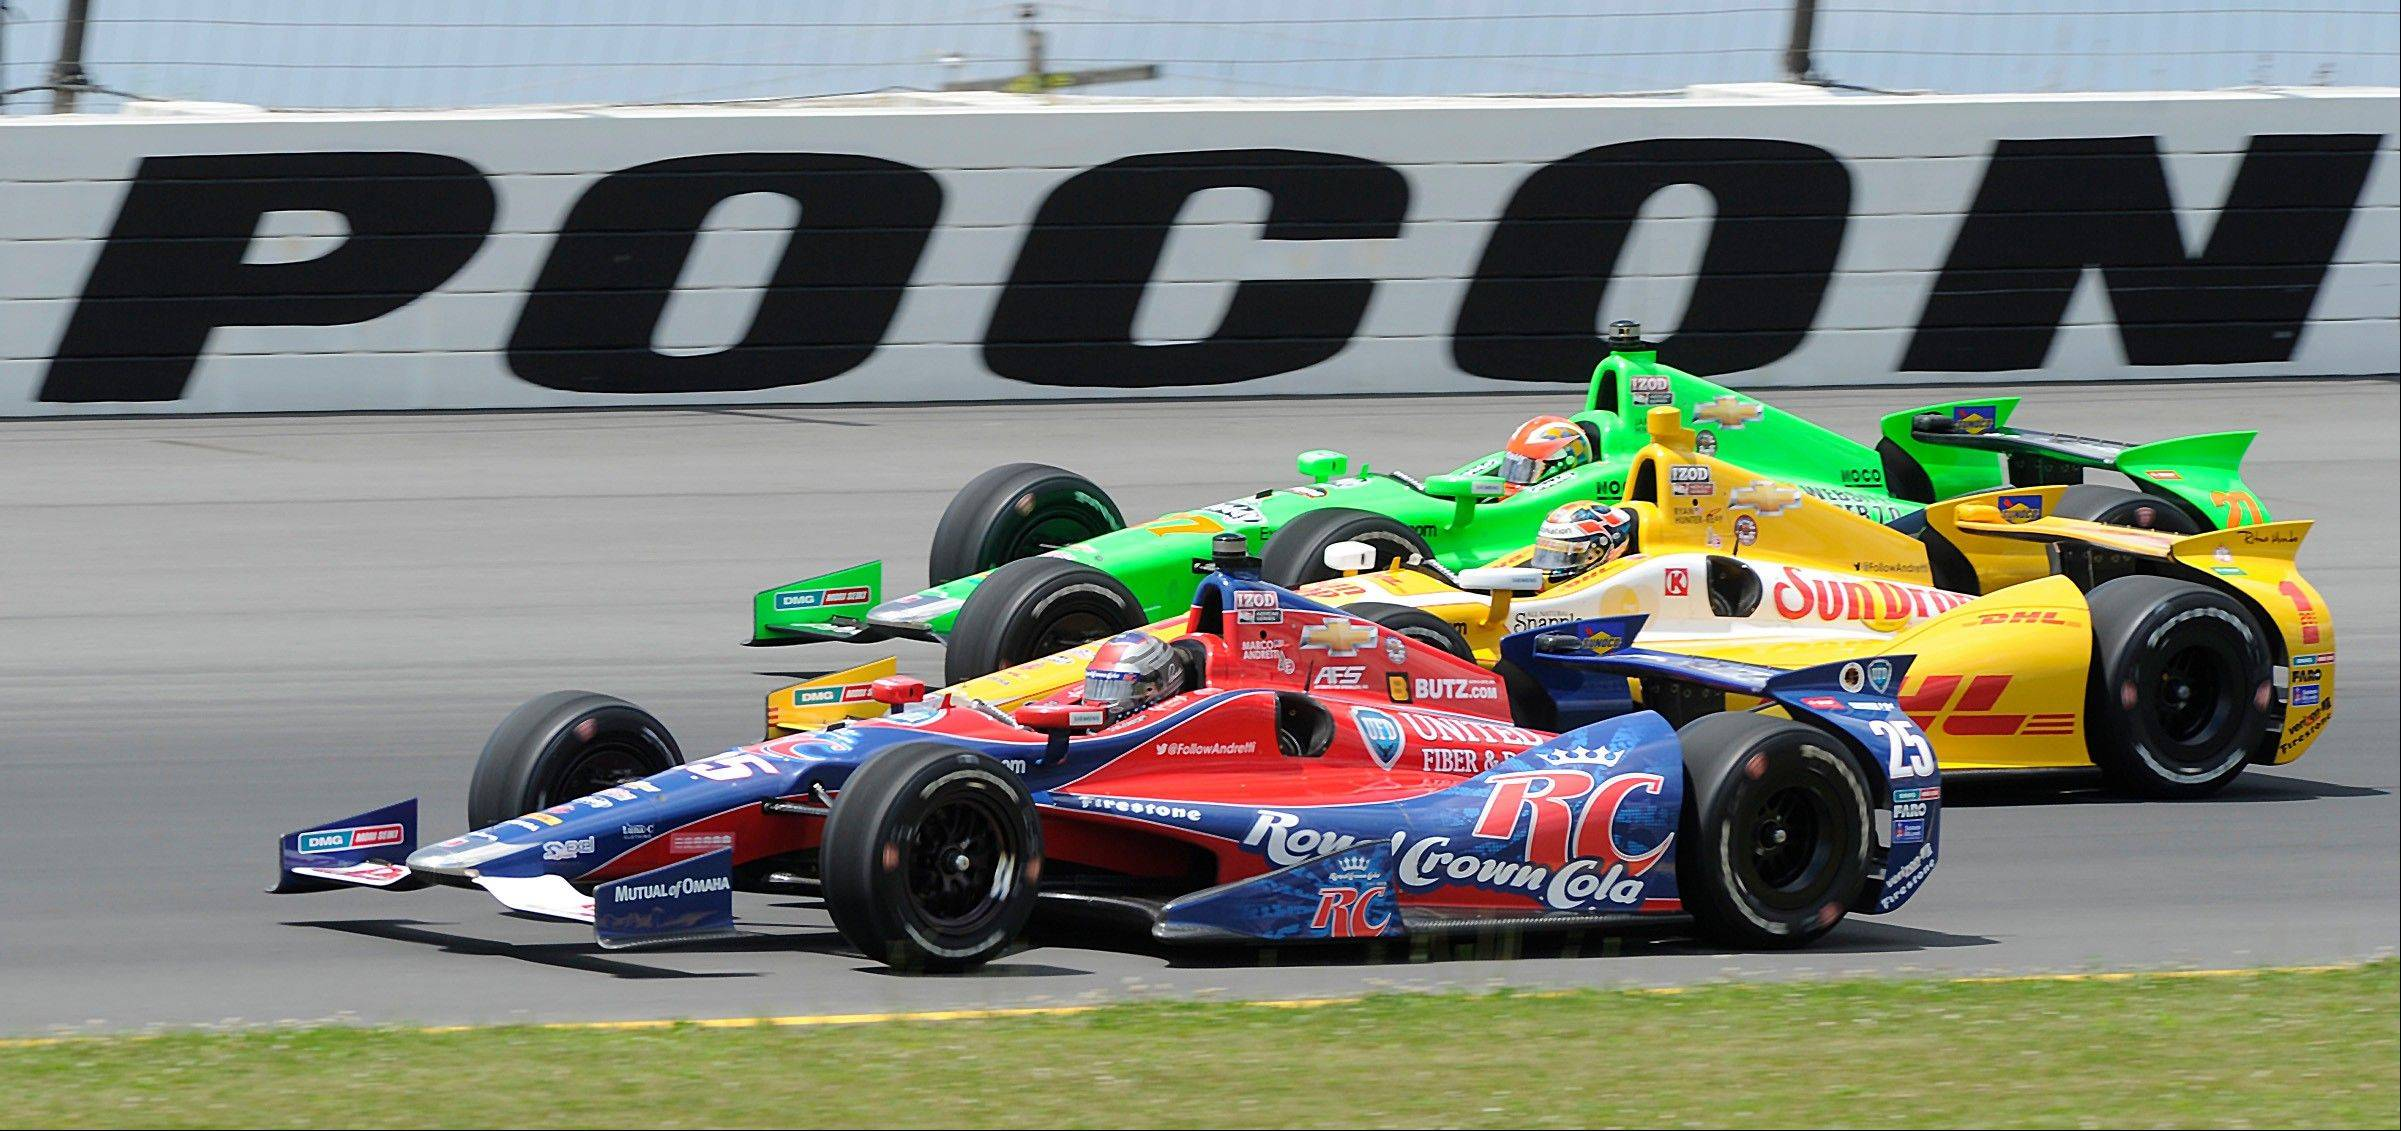 Marco Andretti (25), Ryan Hunter-Reay (1) and James Hinchcliffe (27) drive through Turn 3 as they head for the green flag to start the IndyCar Pocono 400 auto race Sunday in Long Pond, Pa. Hinchcliffe hit the wall not long after the green flag, Hunter-Reay got in a freak pit-road accident, and Andretti faded from contention as his fuel ran low late in the race.